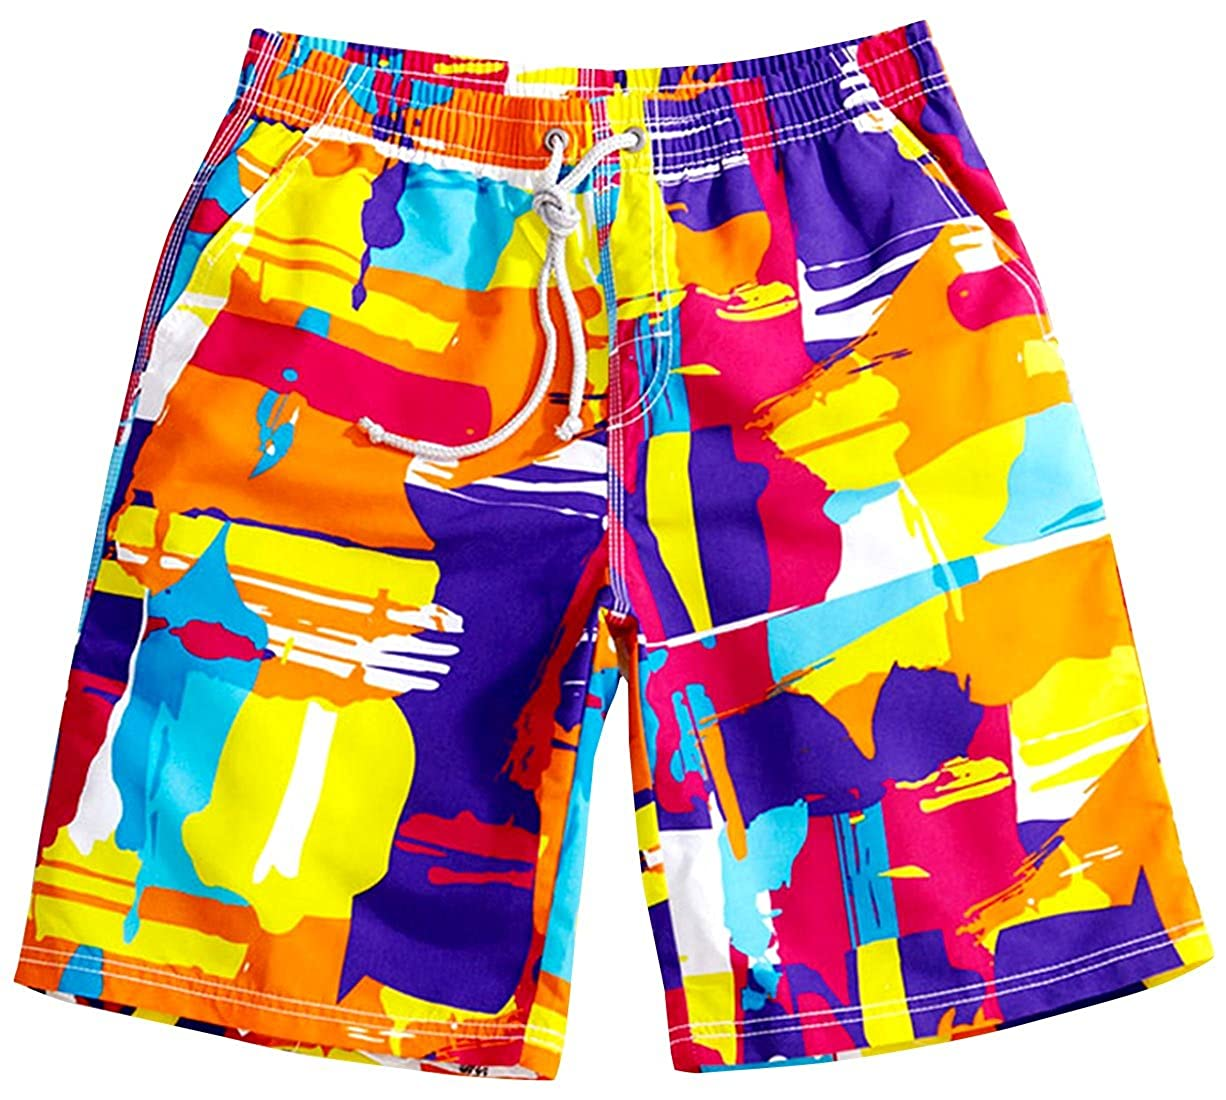 Tailor Pal Love Men's Summer Holiday Colorful Printing Quick-Drying Boardshorts Water Beachwear